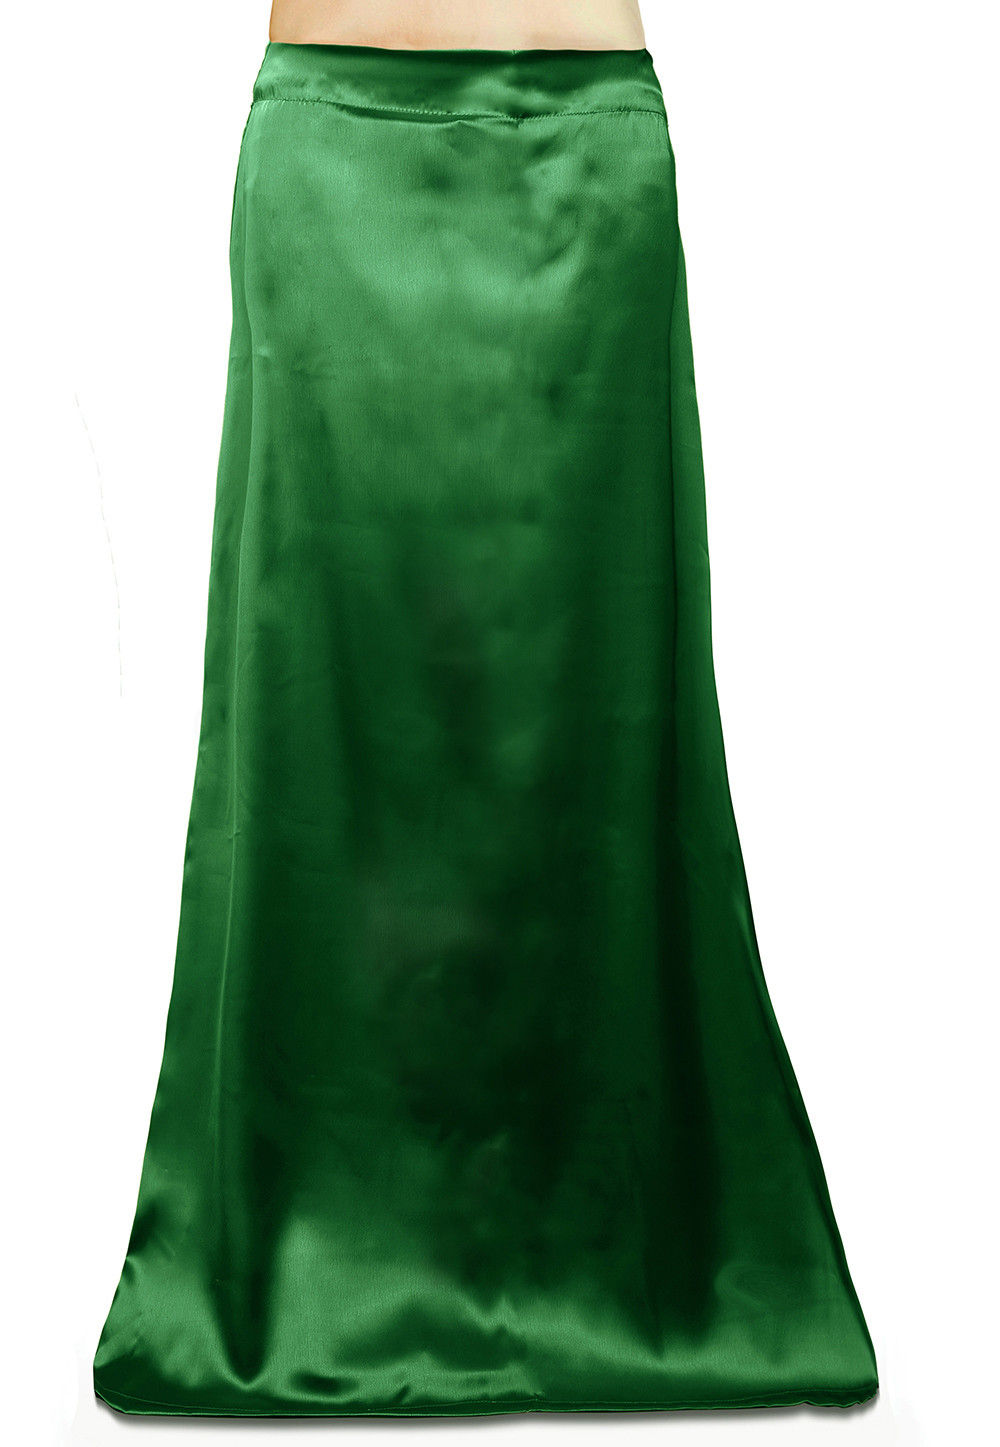 Satin Petticoat in Green